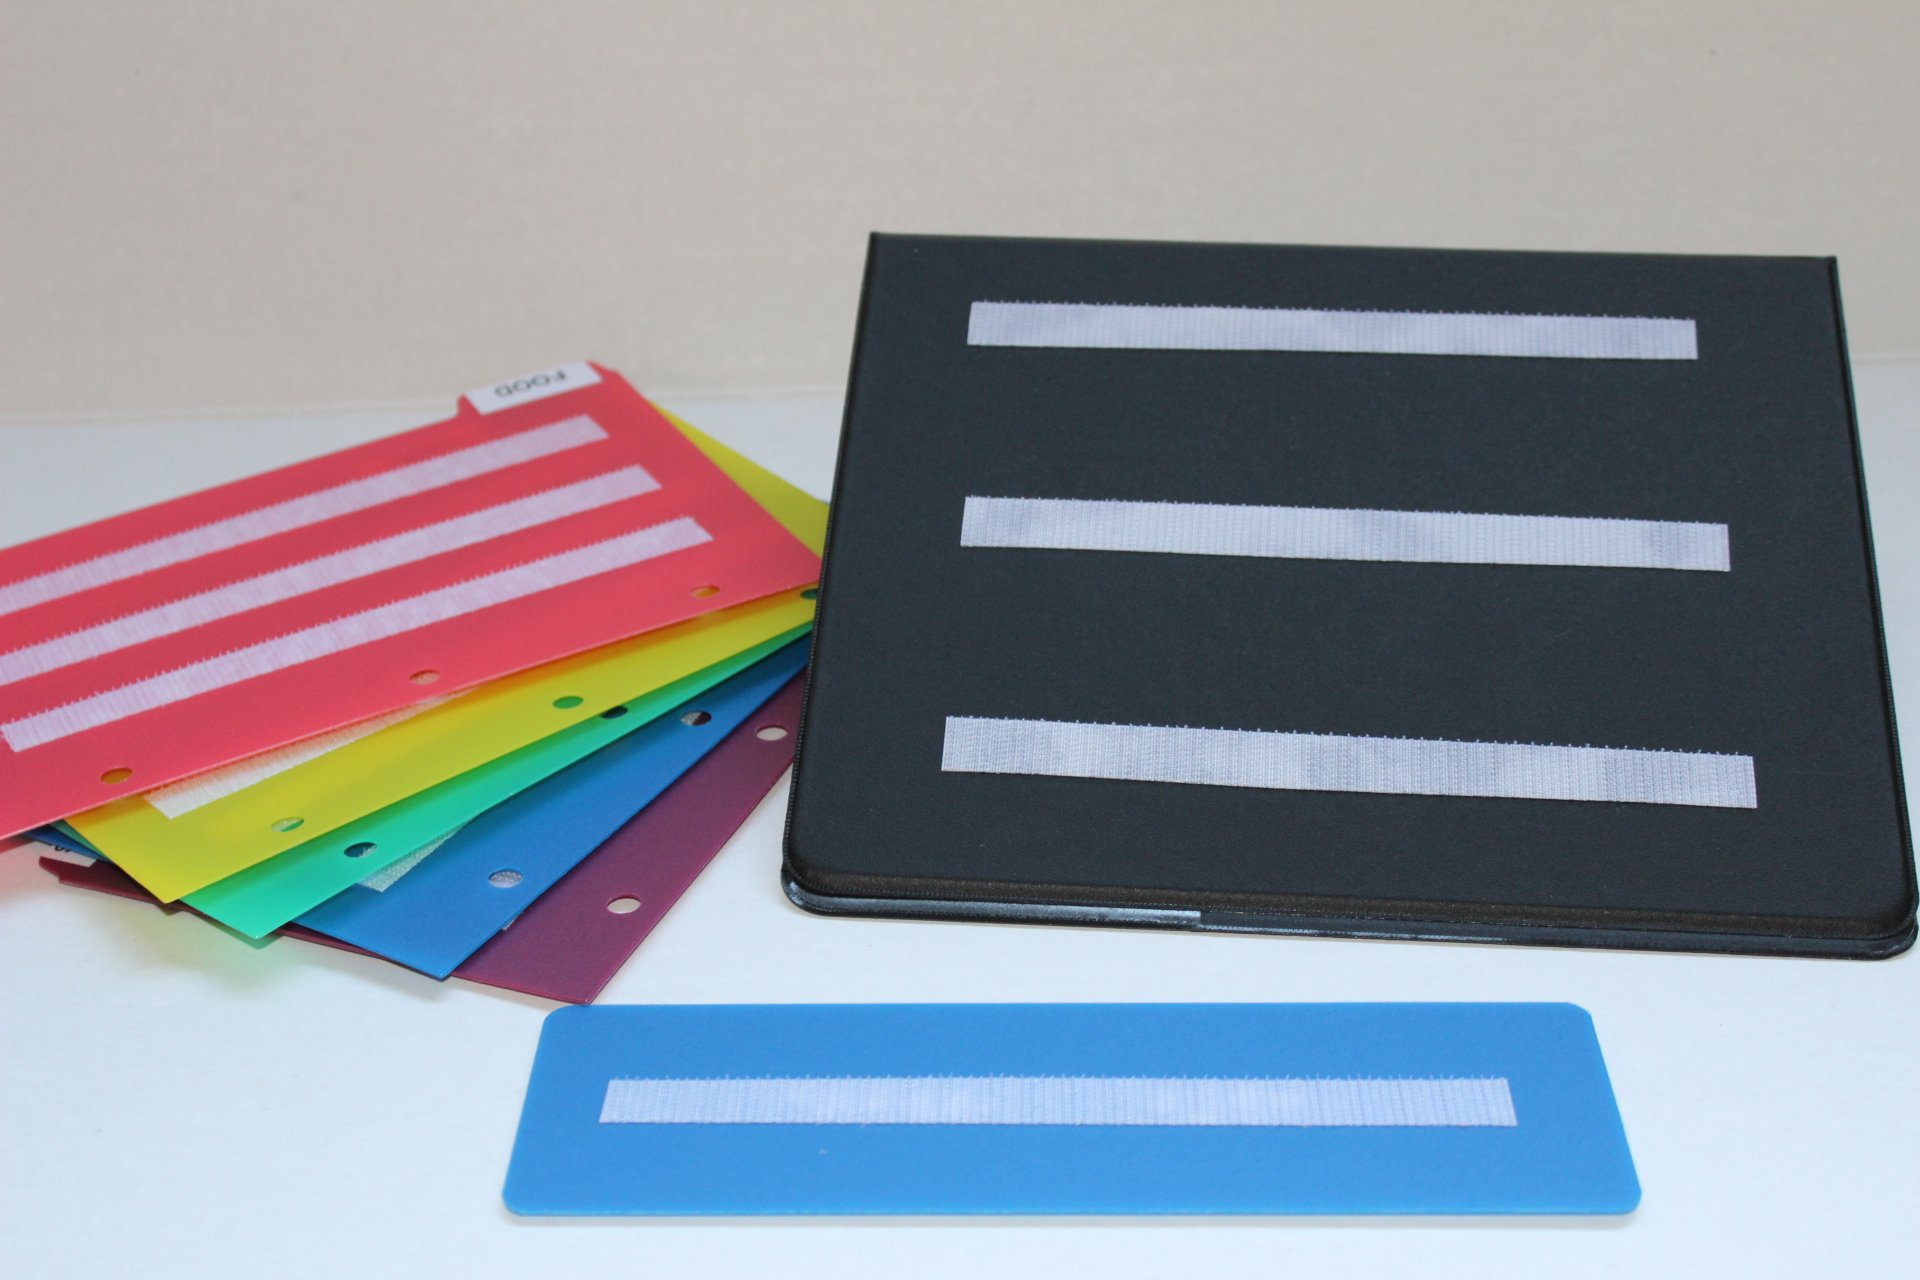 Small Black Picture Photo Book with 5 Color Dividers Measured 8.5x5.5 perfect to keep your loose cards organized. by www.smile4autism.com